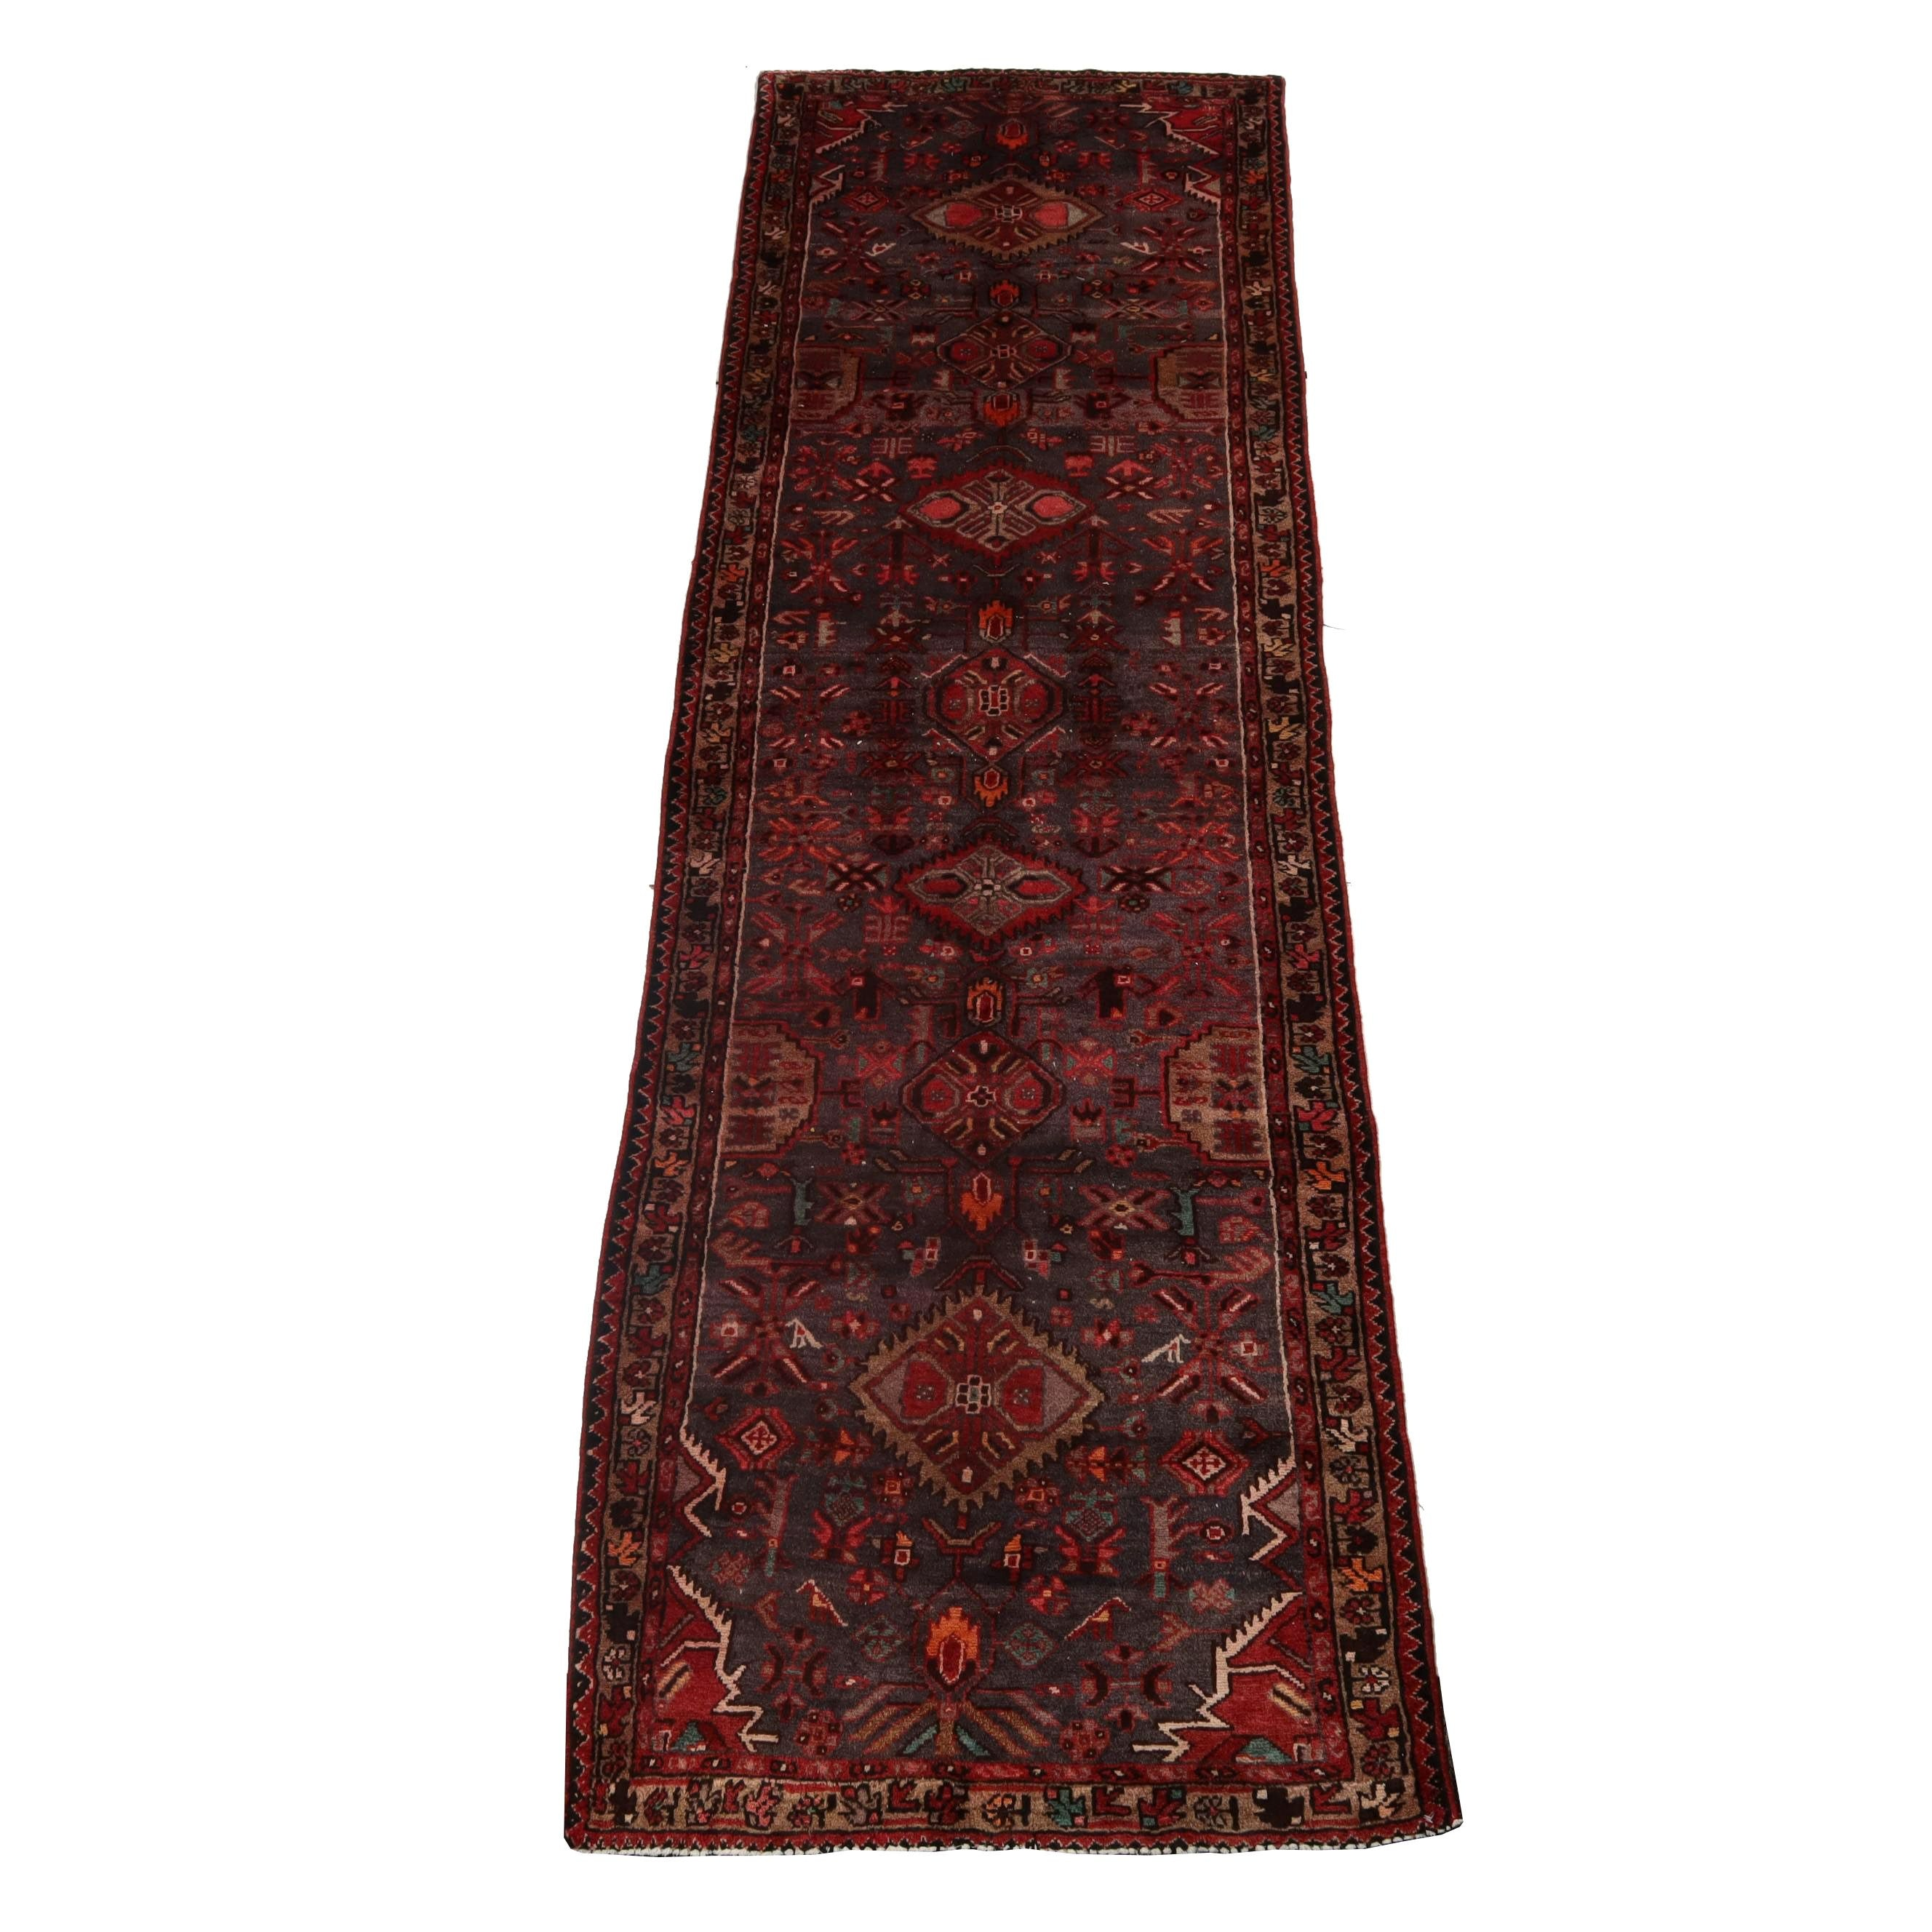 3.8' x 12.1' Hand-Knotted Northwest Persian Wool Long Rug